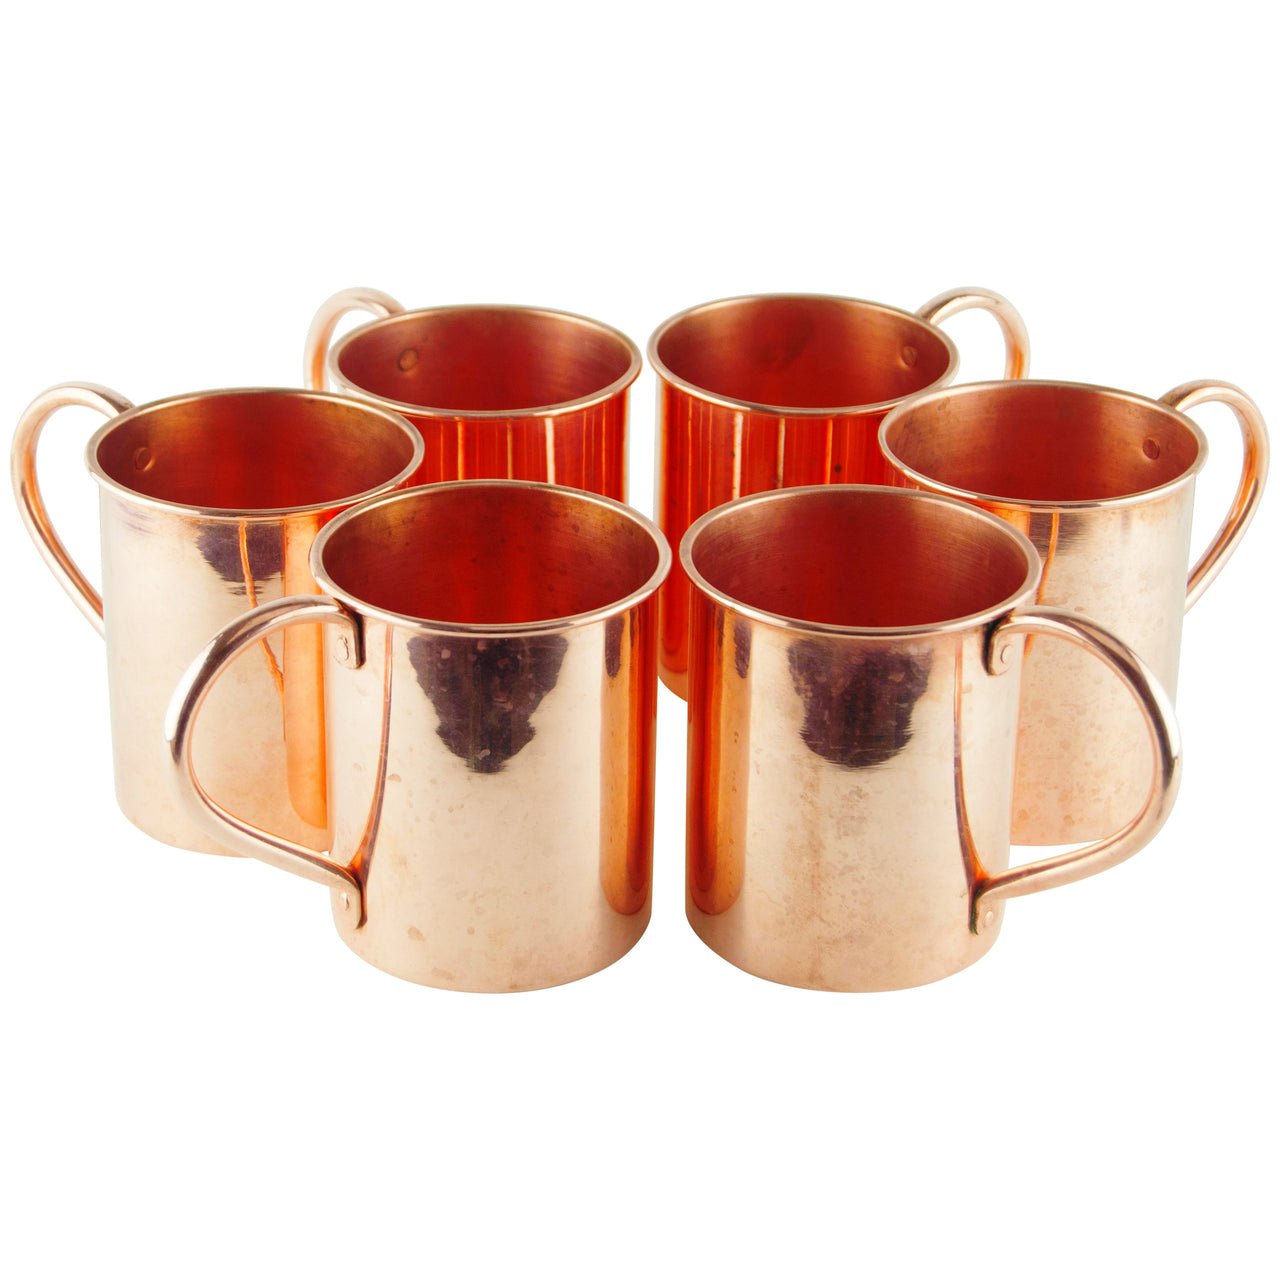 Large Copper Mug Set | The Hour Shop Vintage Moscow Mules